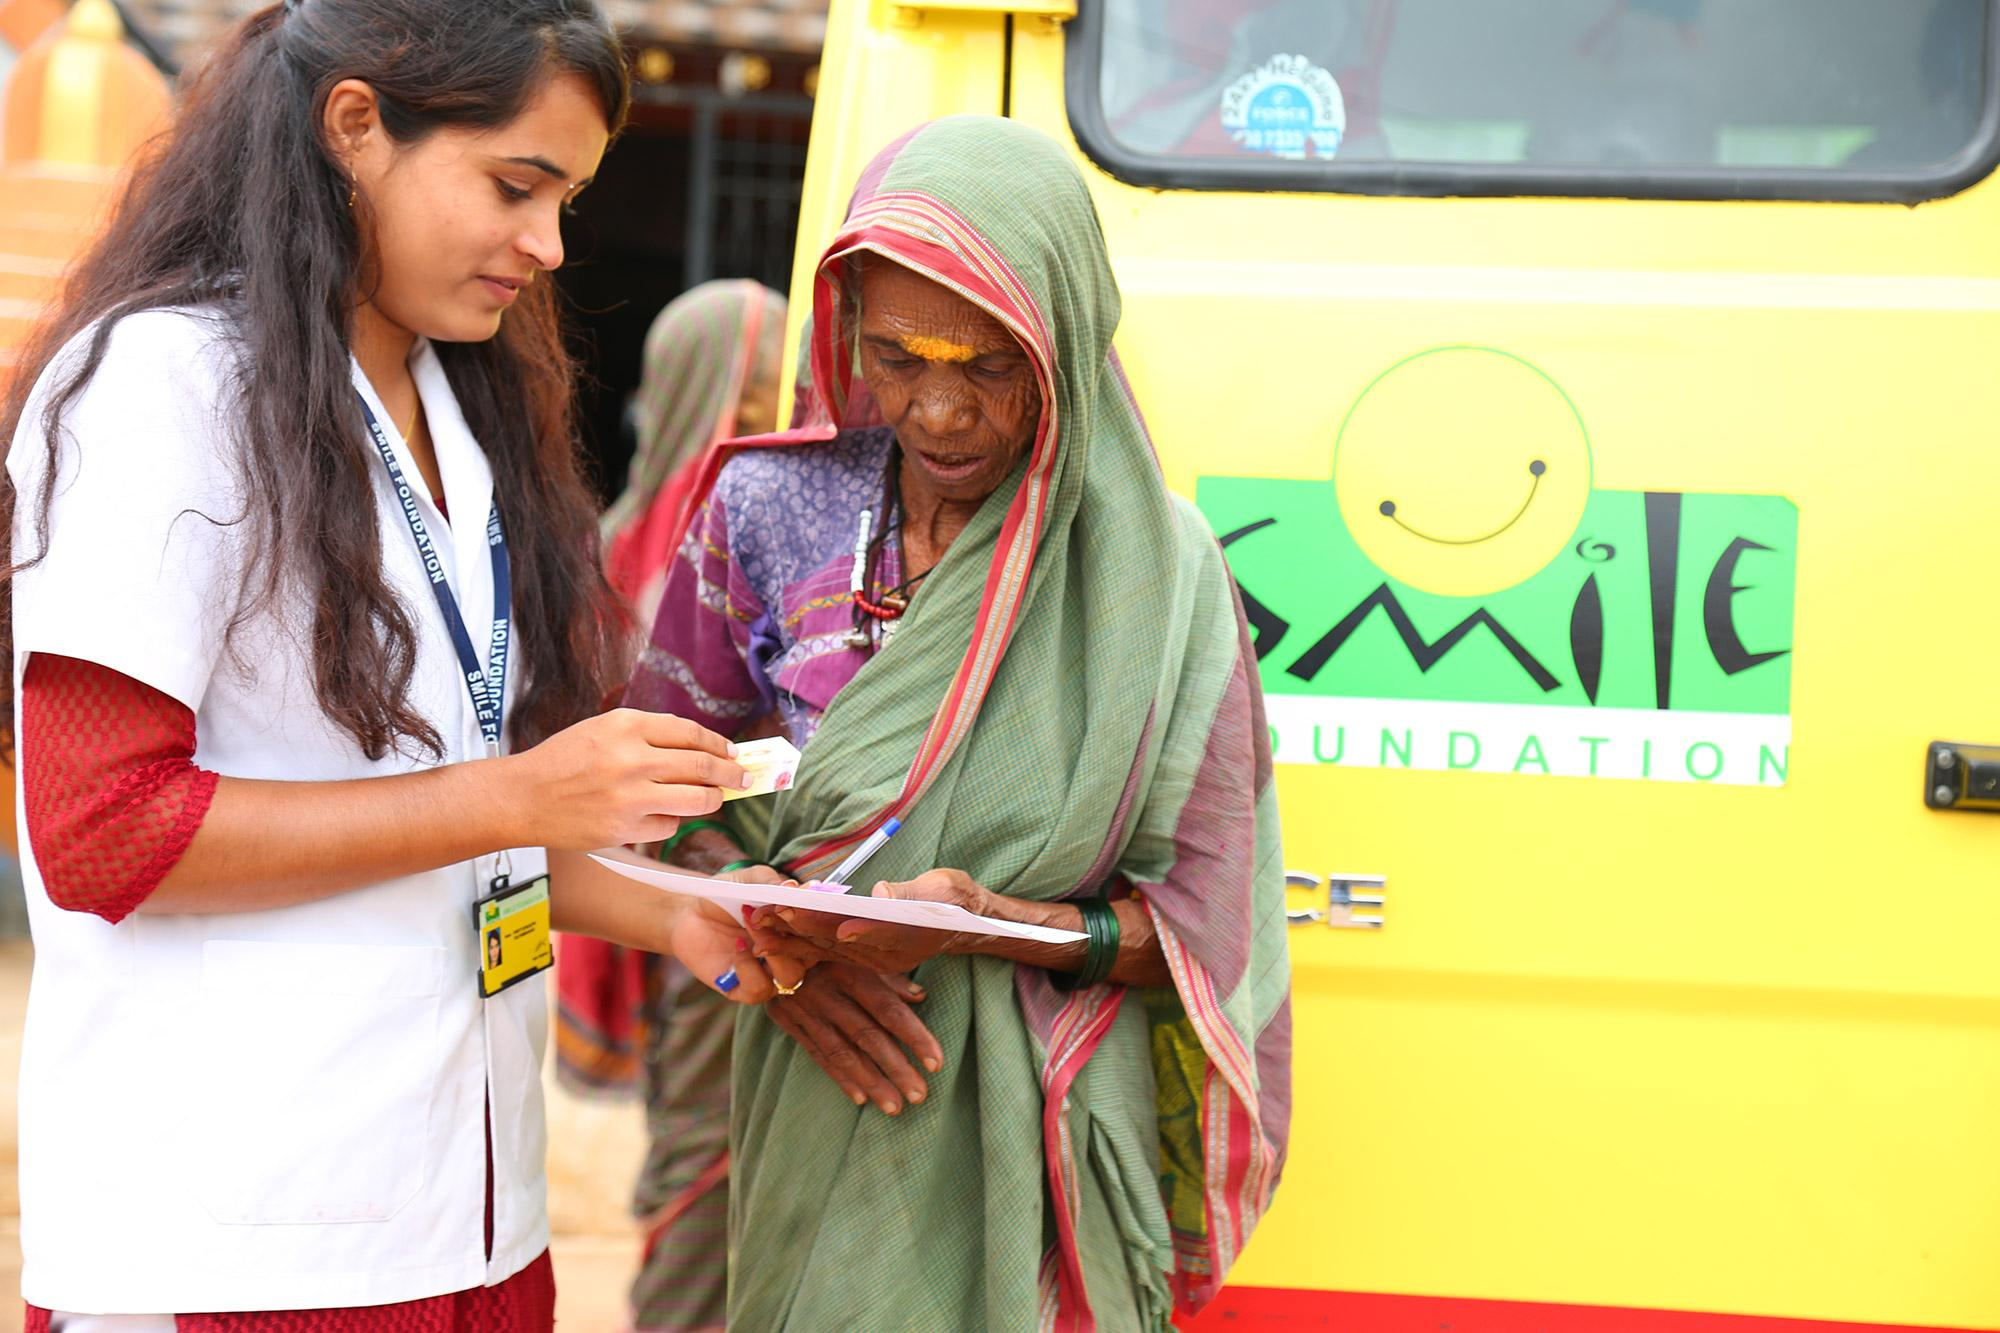 Improving health outcomes for under-served communities in rural Rajasthan